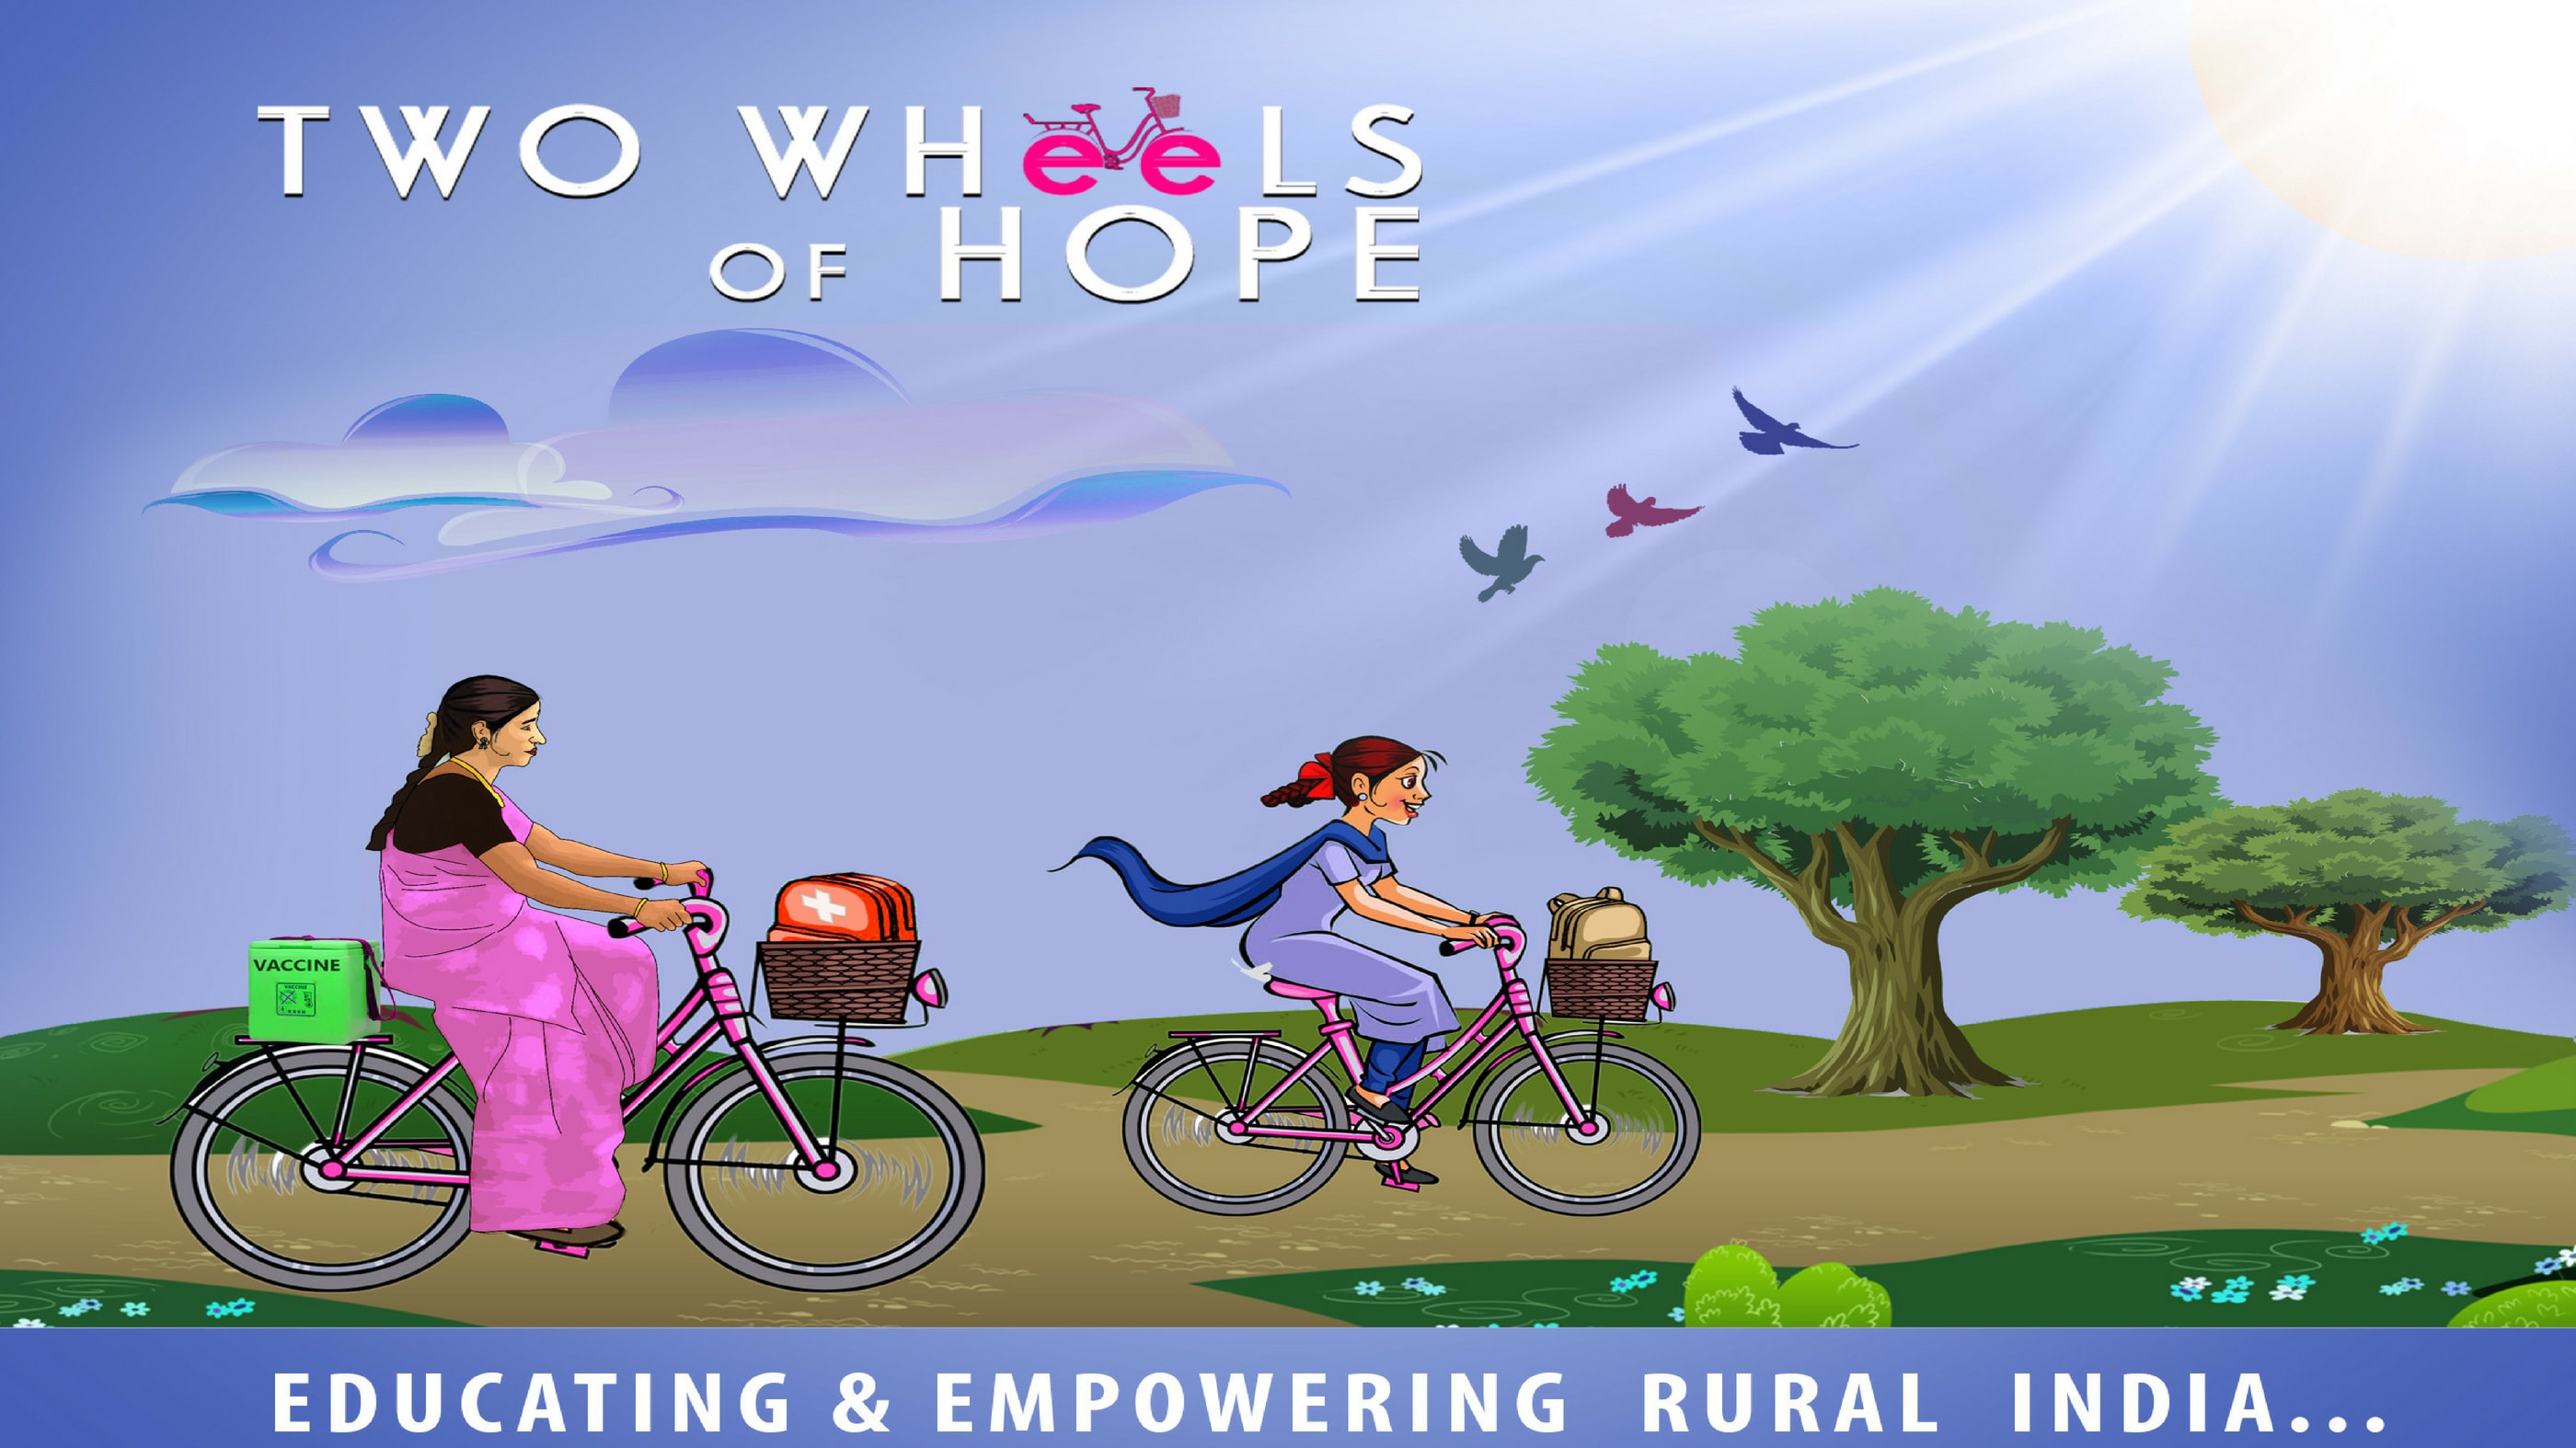 Two Wheels of Hope